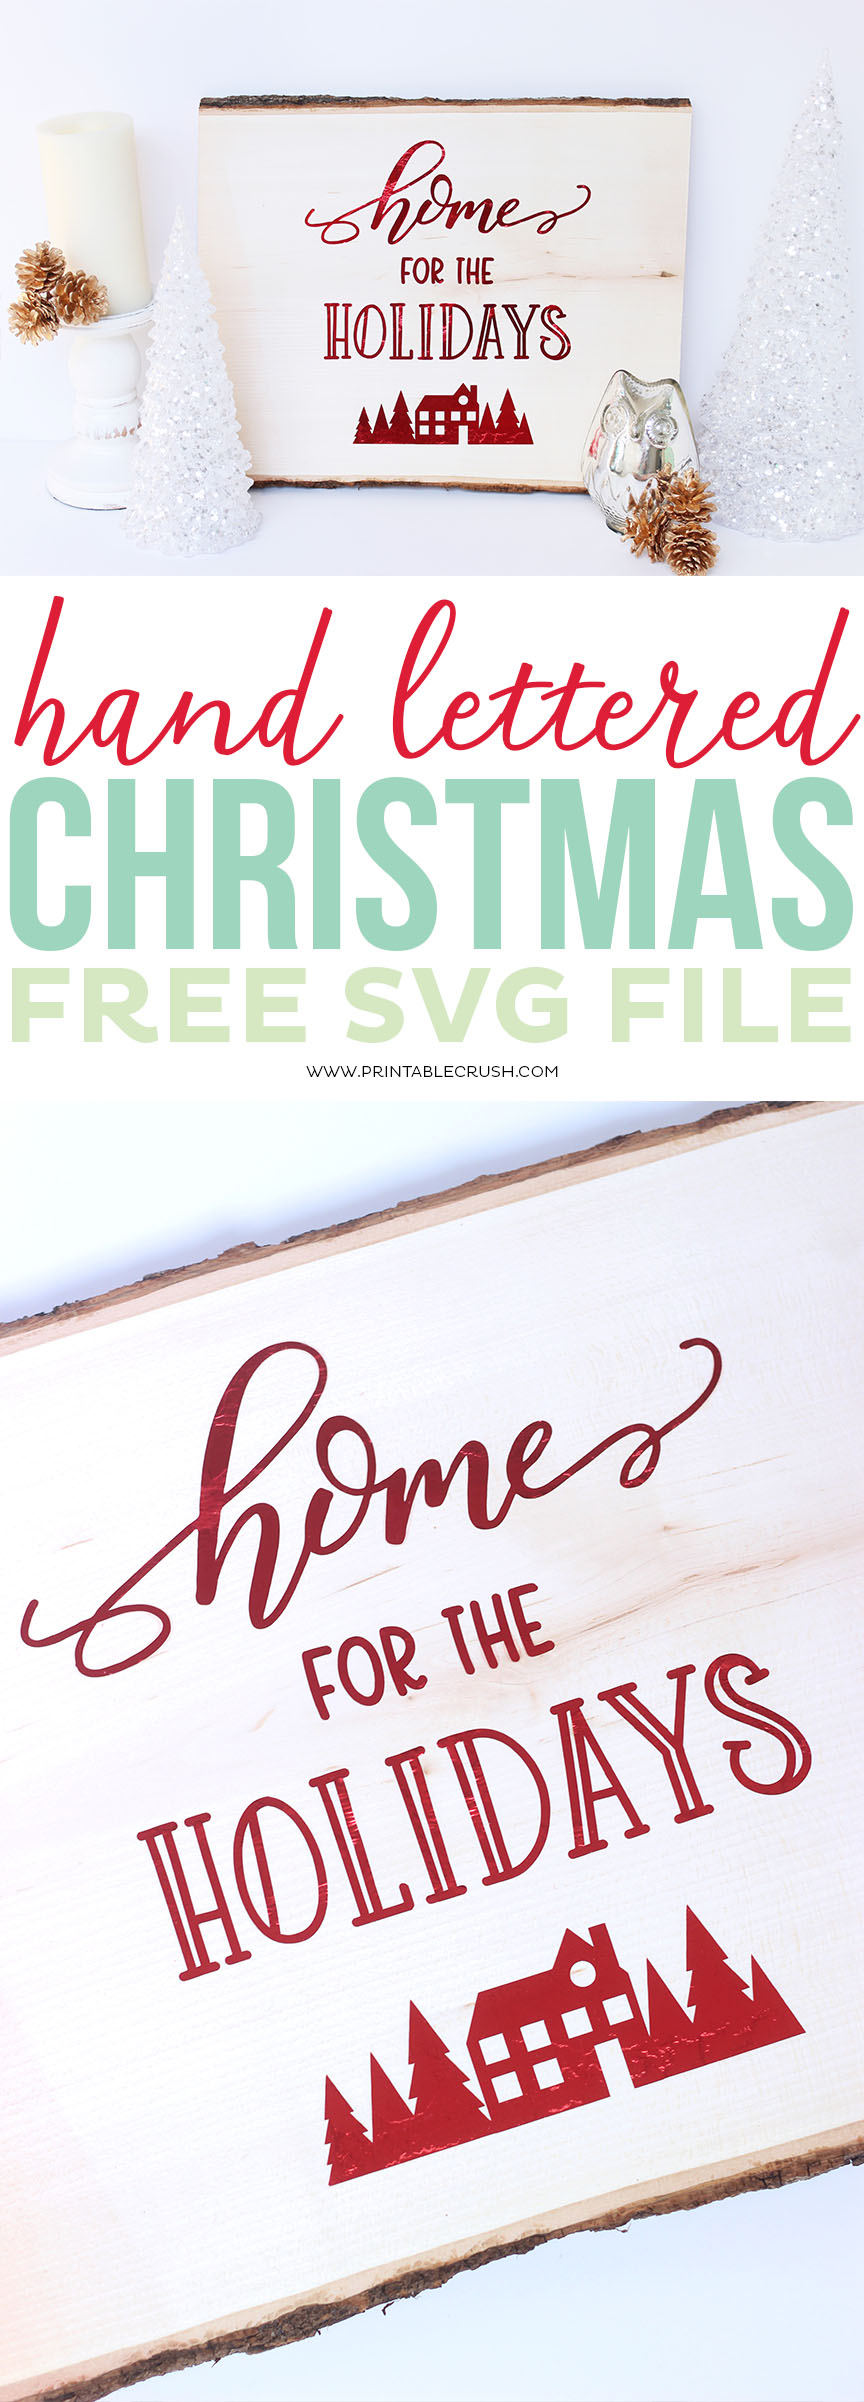 Use this Hand Lettered FREE Christmas SVG File to create home decor, t-shirts, ornaments, and more! This tutorial will also show you how to use the EasyPress on wood!